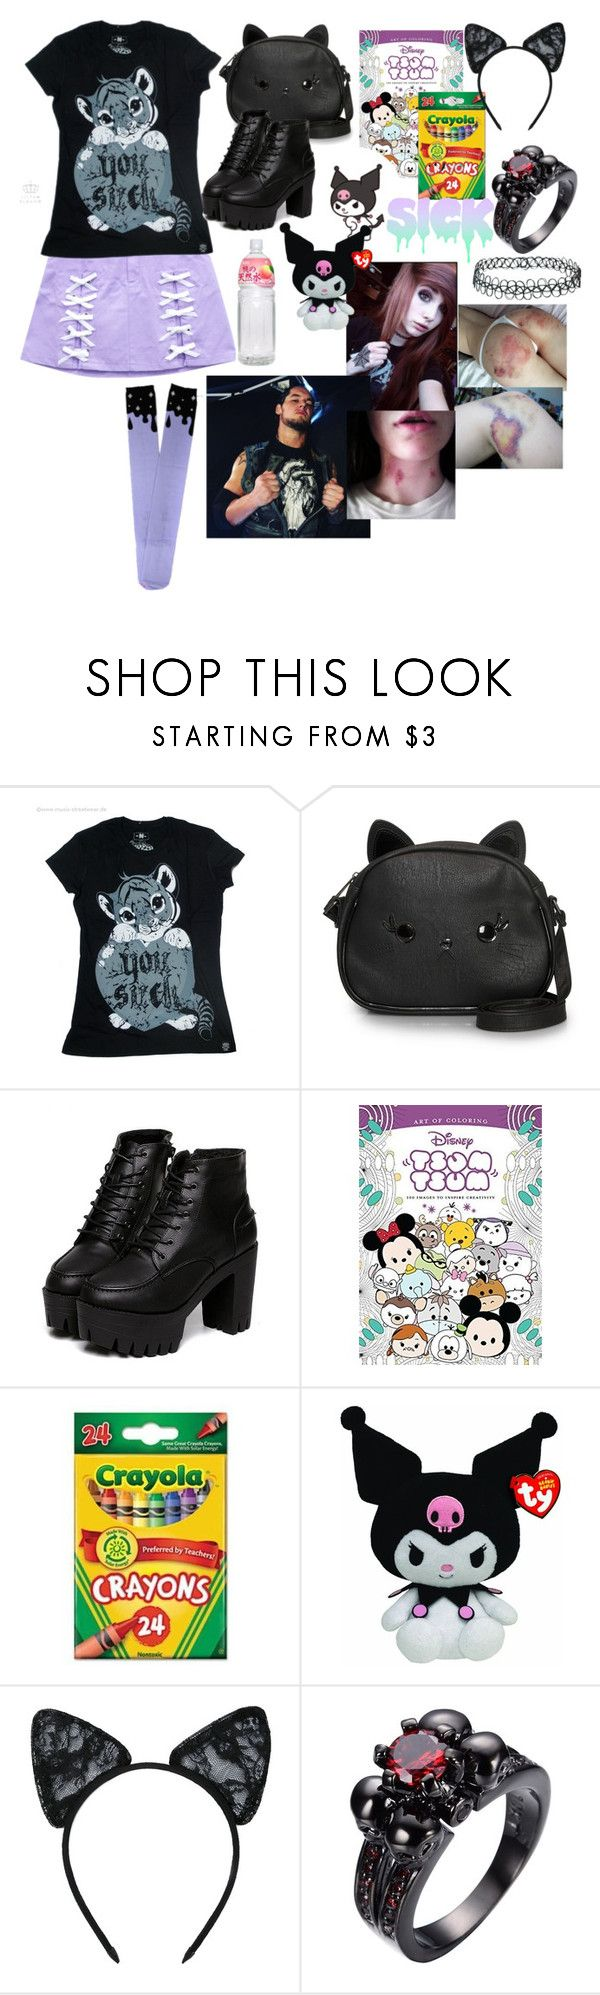 """traveling with daddy"" by monsterhex ❤ liked on Polyvore featuring Loungefly, Disney, Hello Kitty, Maison Close and Topshop"